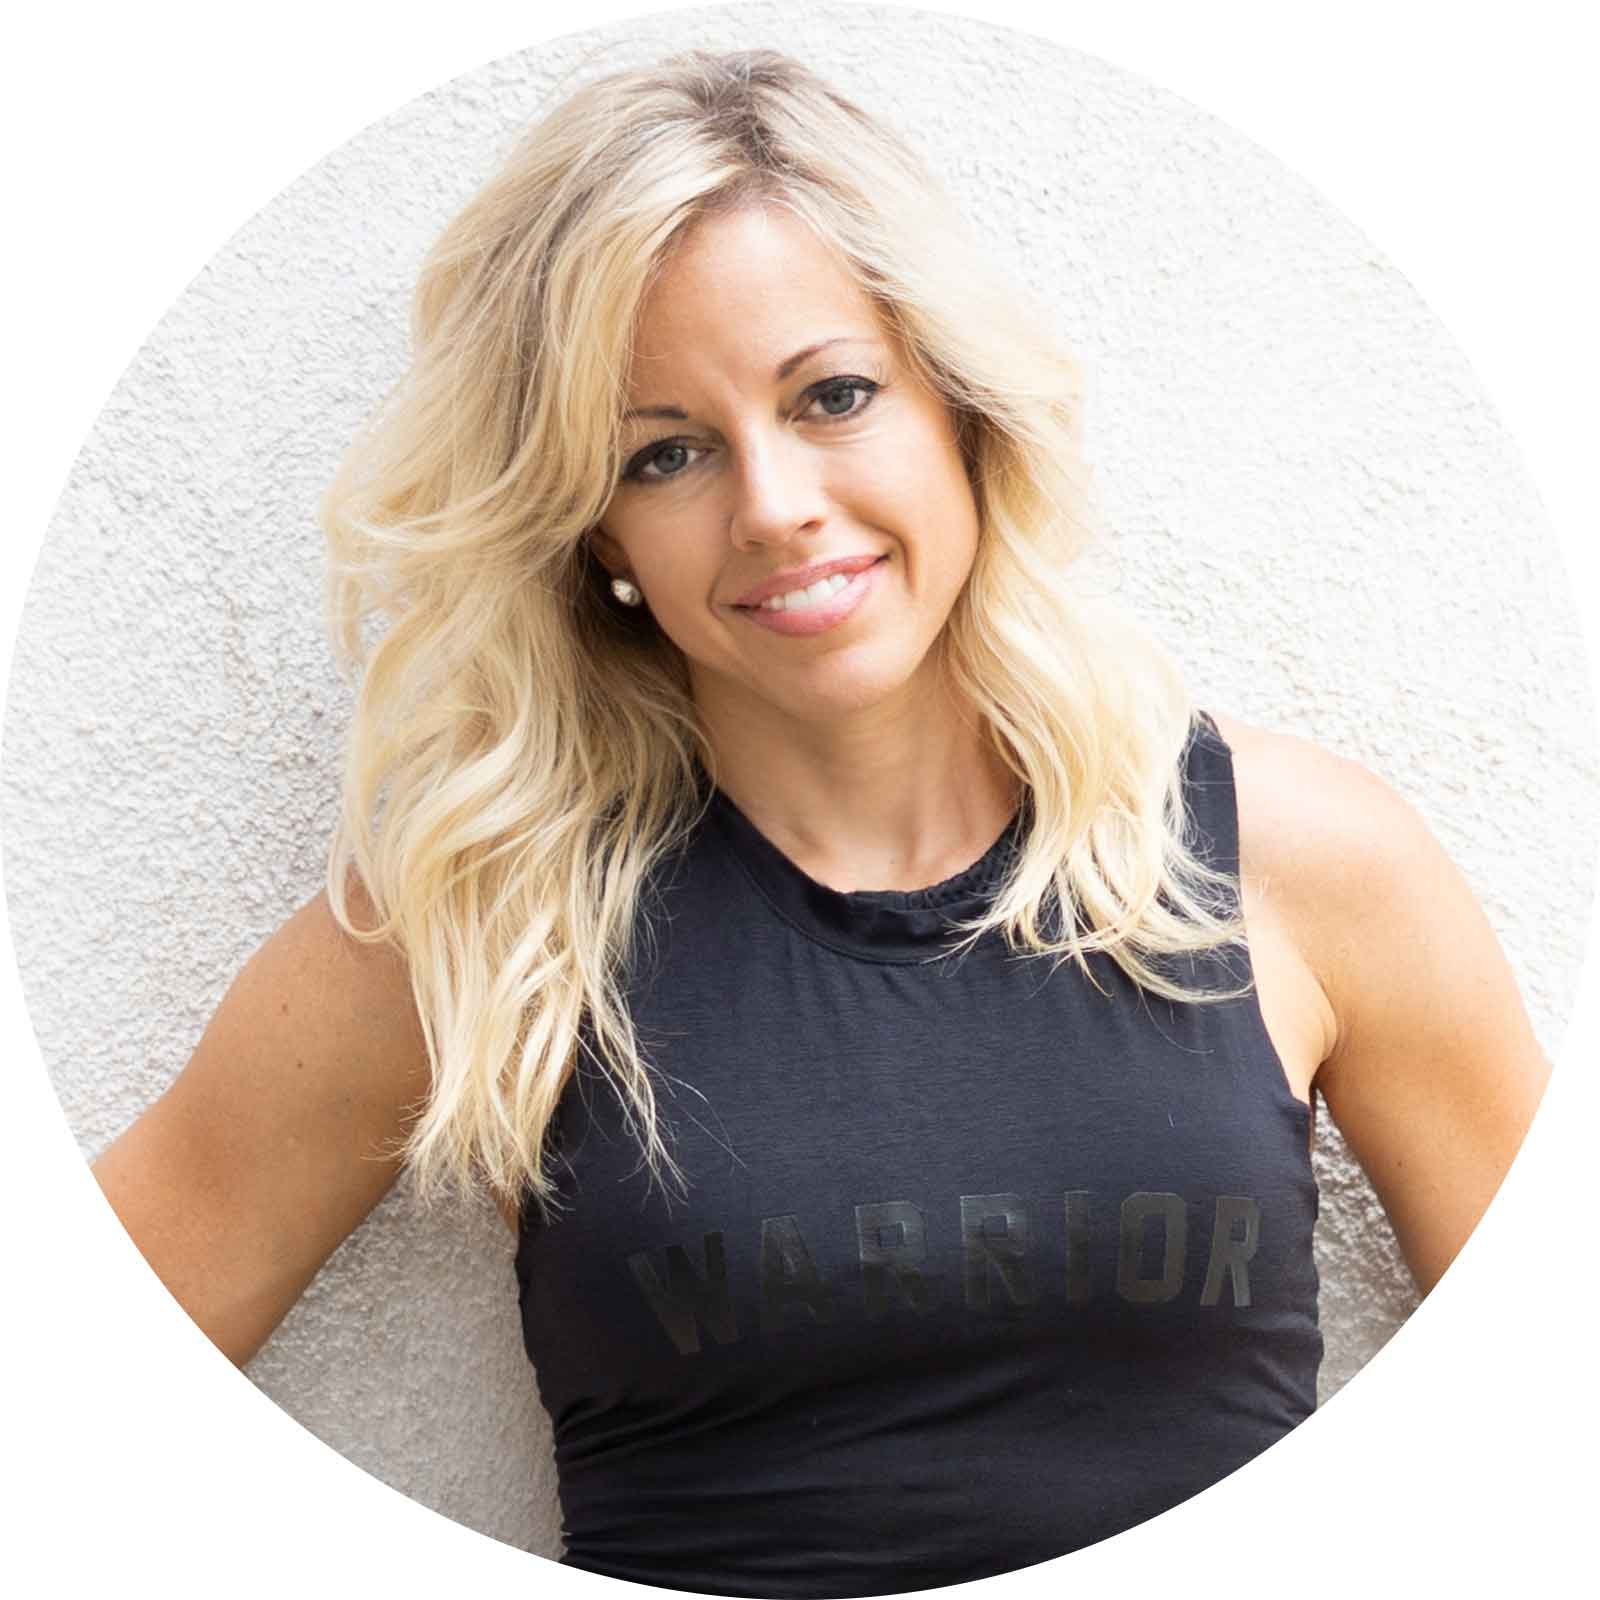 Sarah Pay online fitness instructors on demand videos